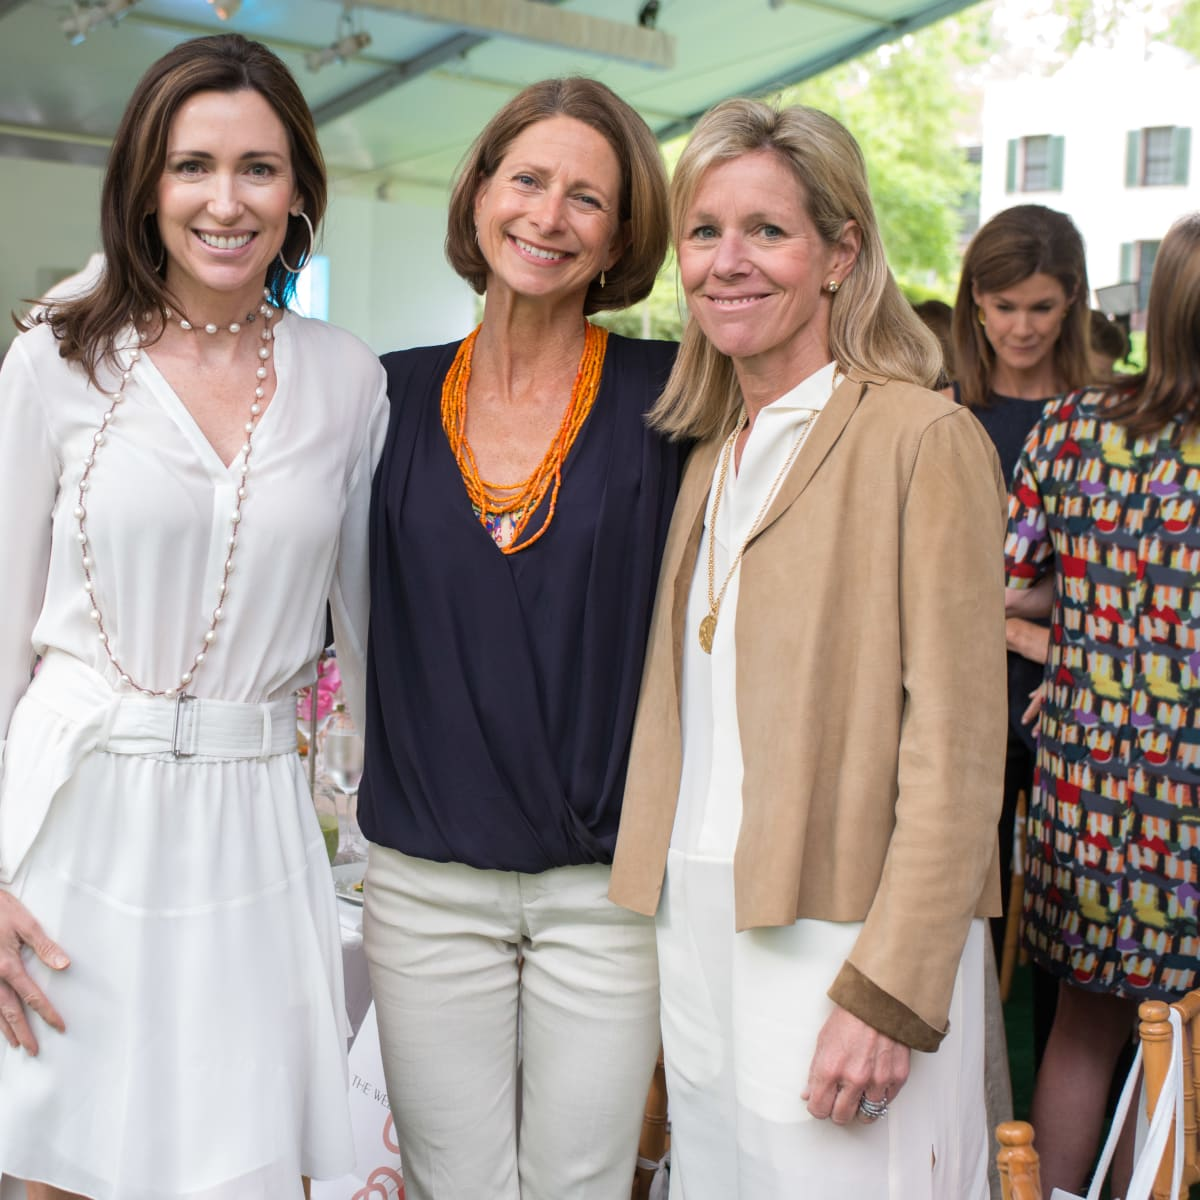 Bayou Bend luncheon, April 2016, Karen Blue, Hillary Gardy, Boo Kennedy